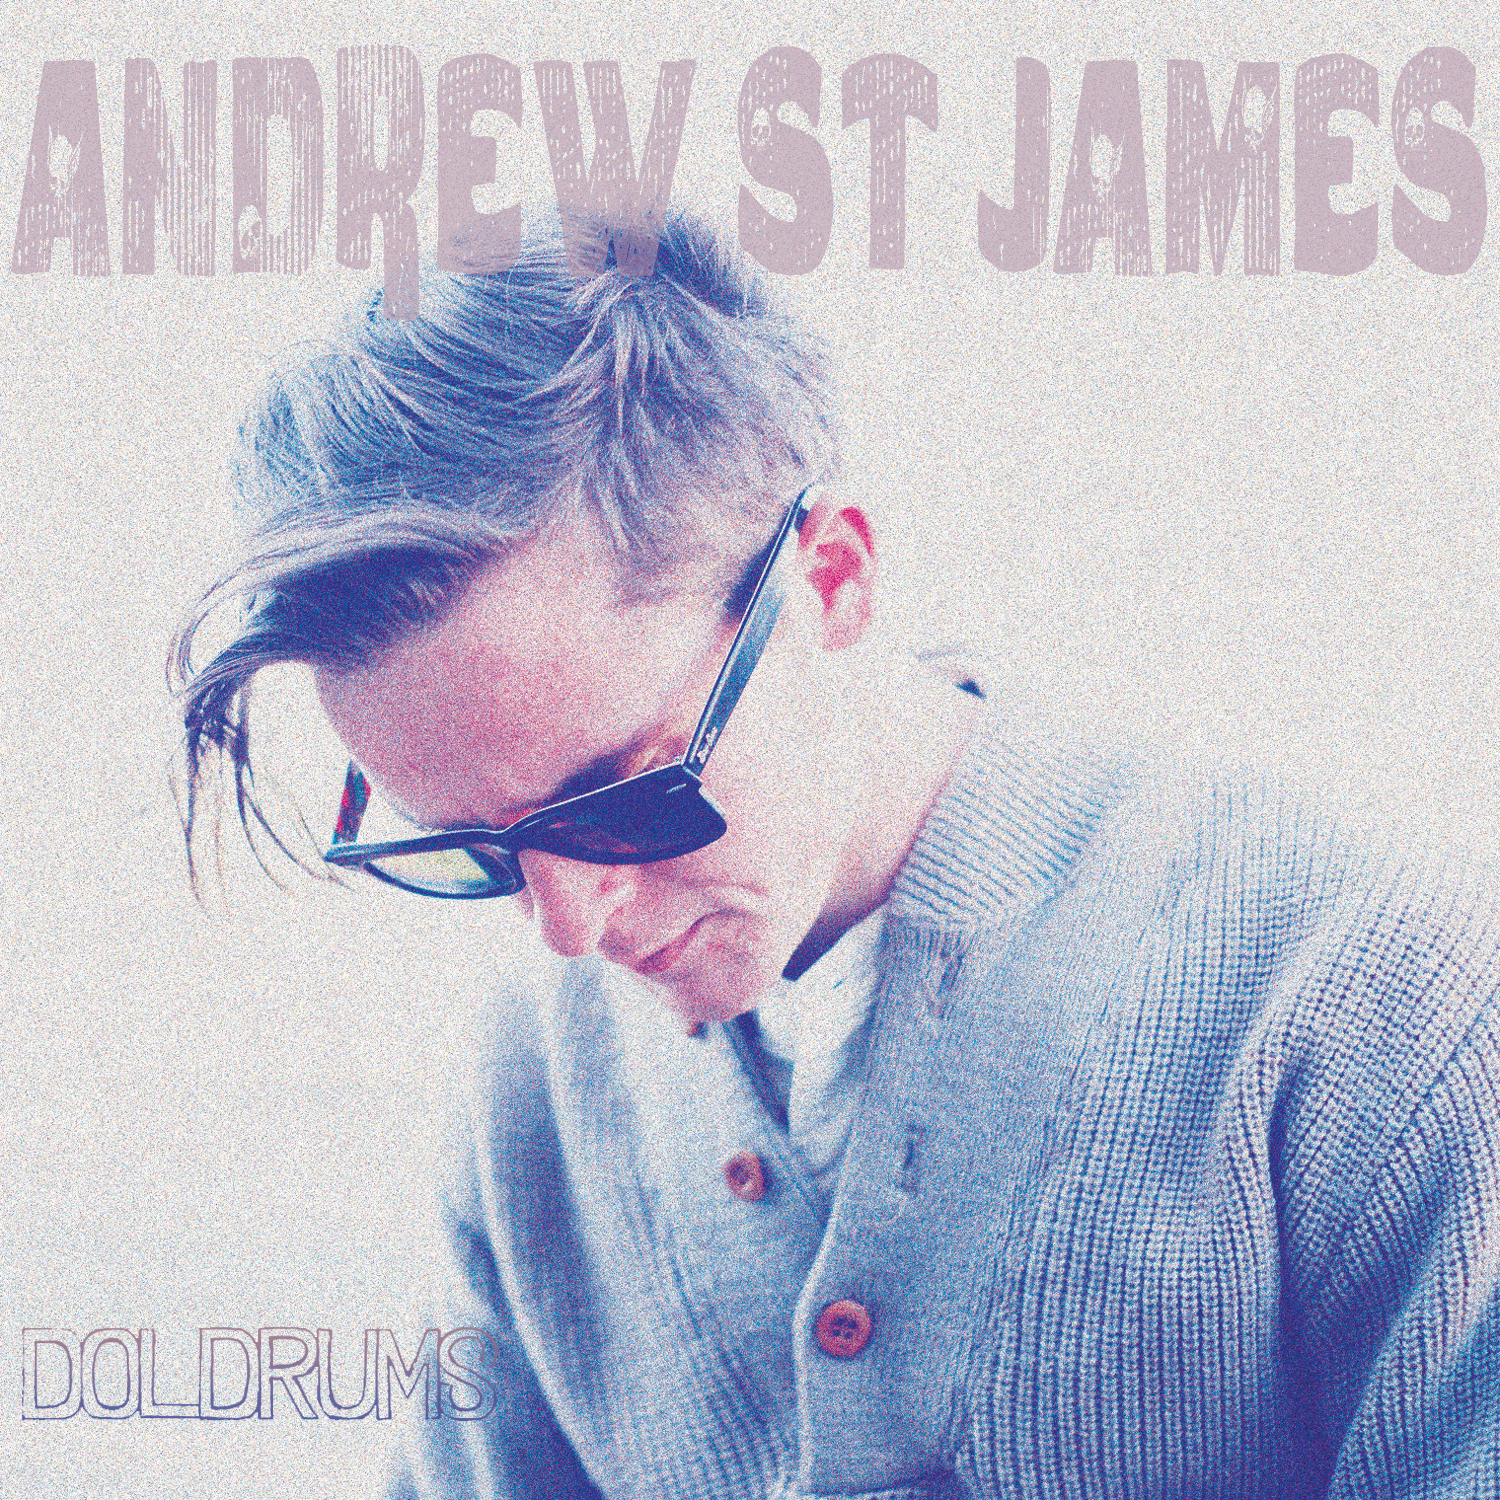 Andrew St James Doldrums